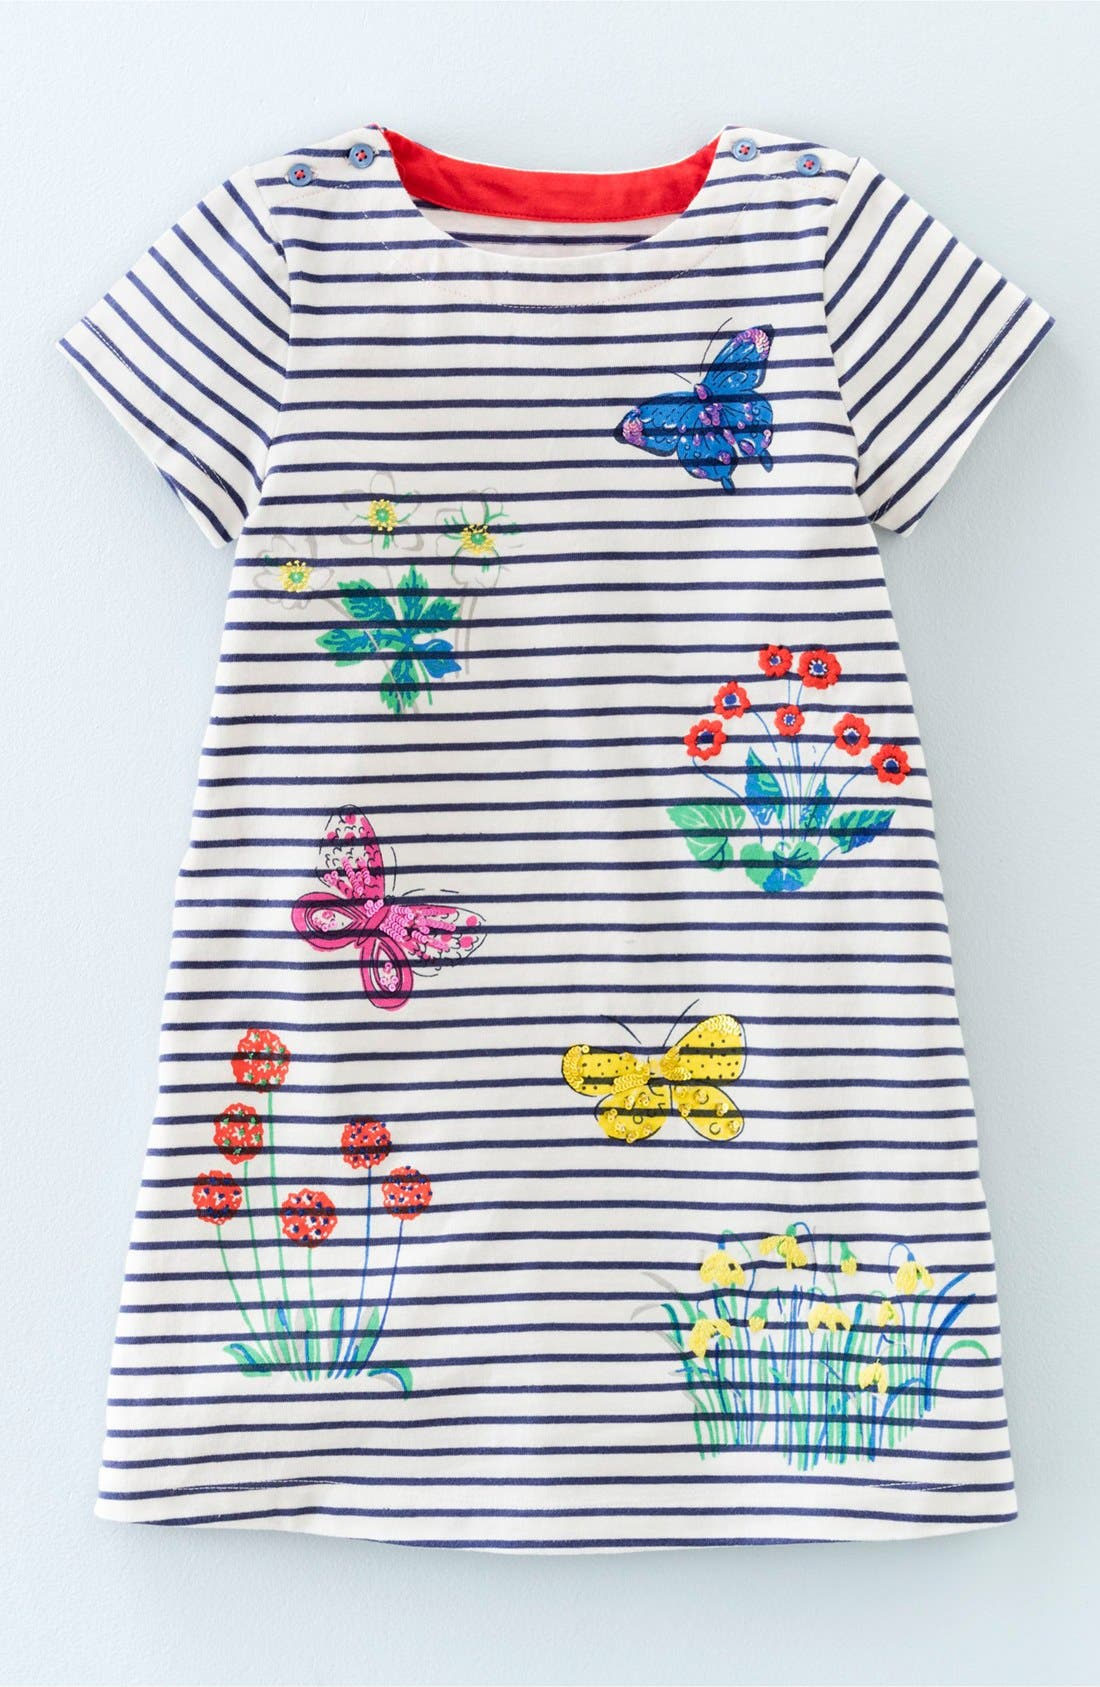 Alternate Image 1 Selected - Mini Boden 'Sparkling' Stripe Jersey Dress (Toddler Girls, Little Girls & Big Girls)